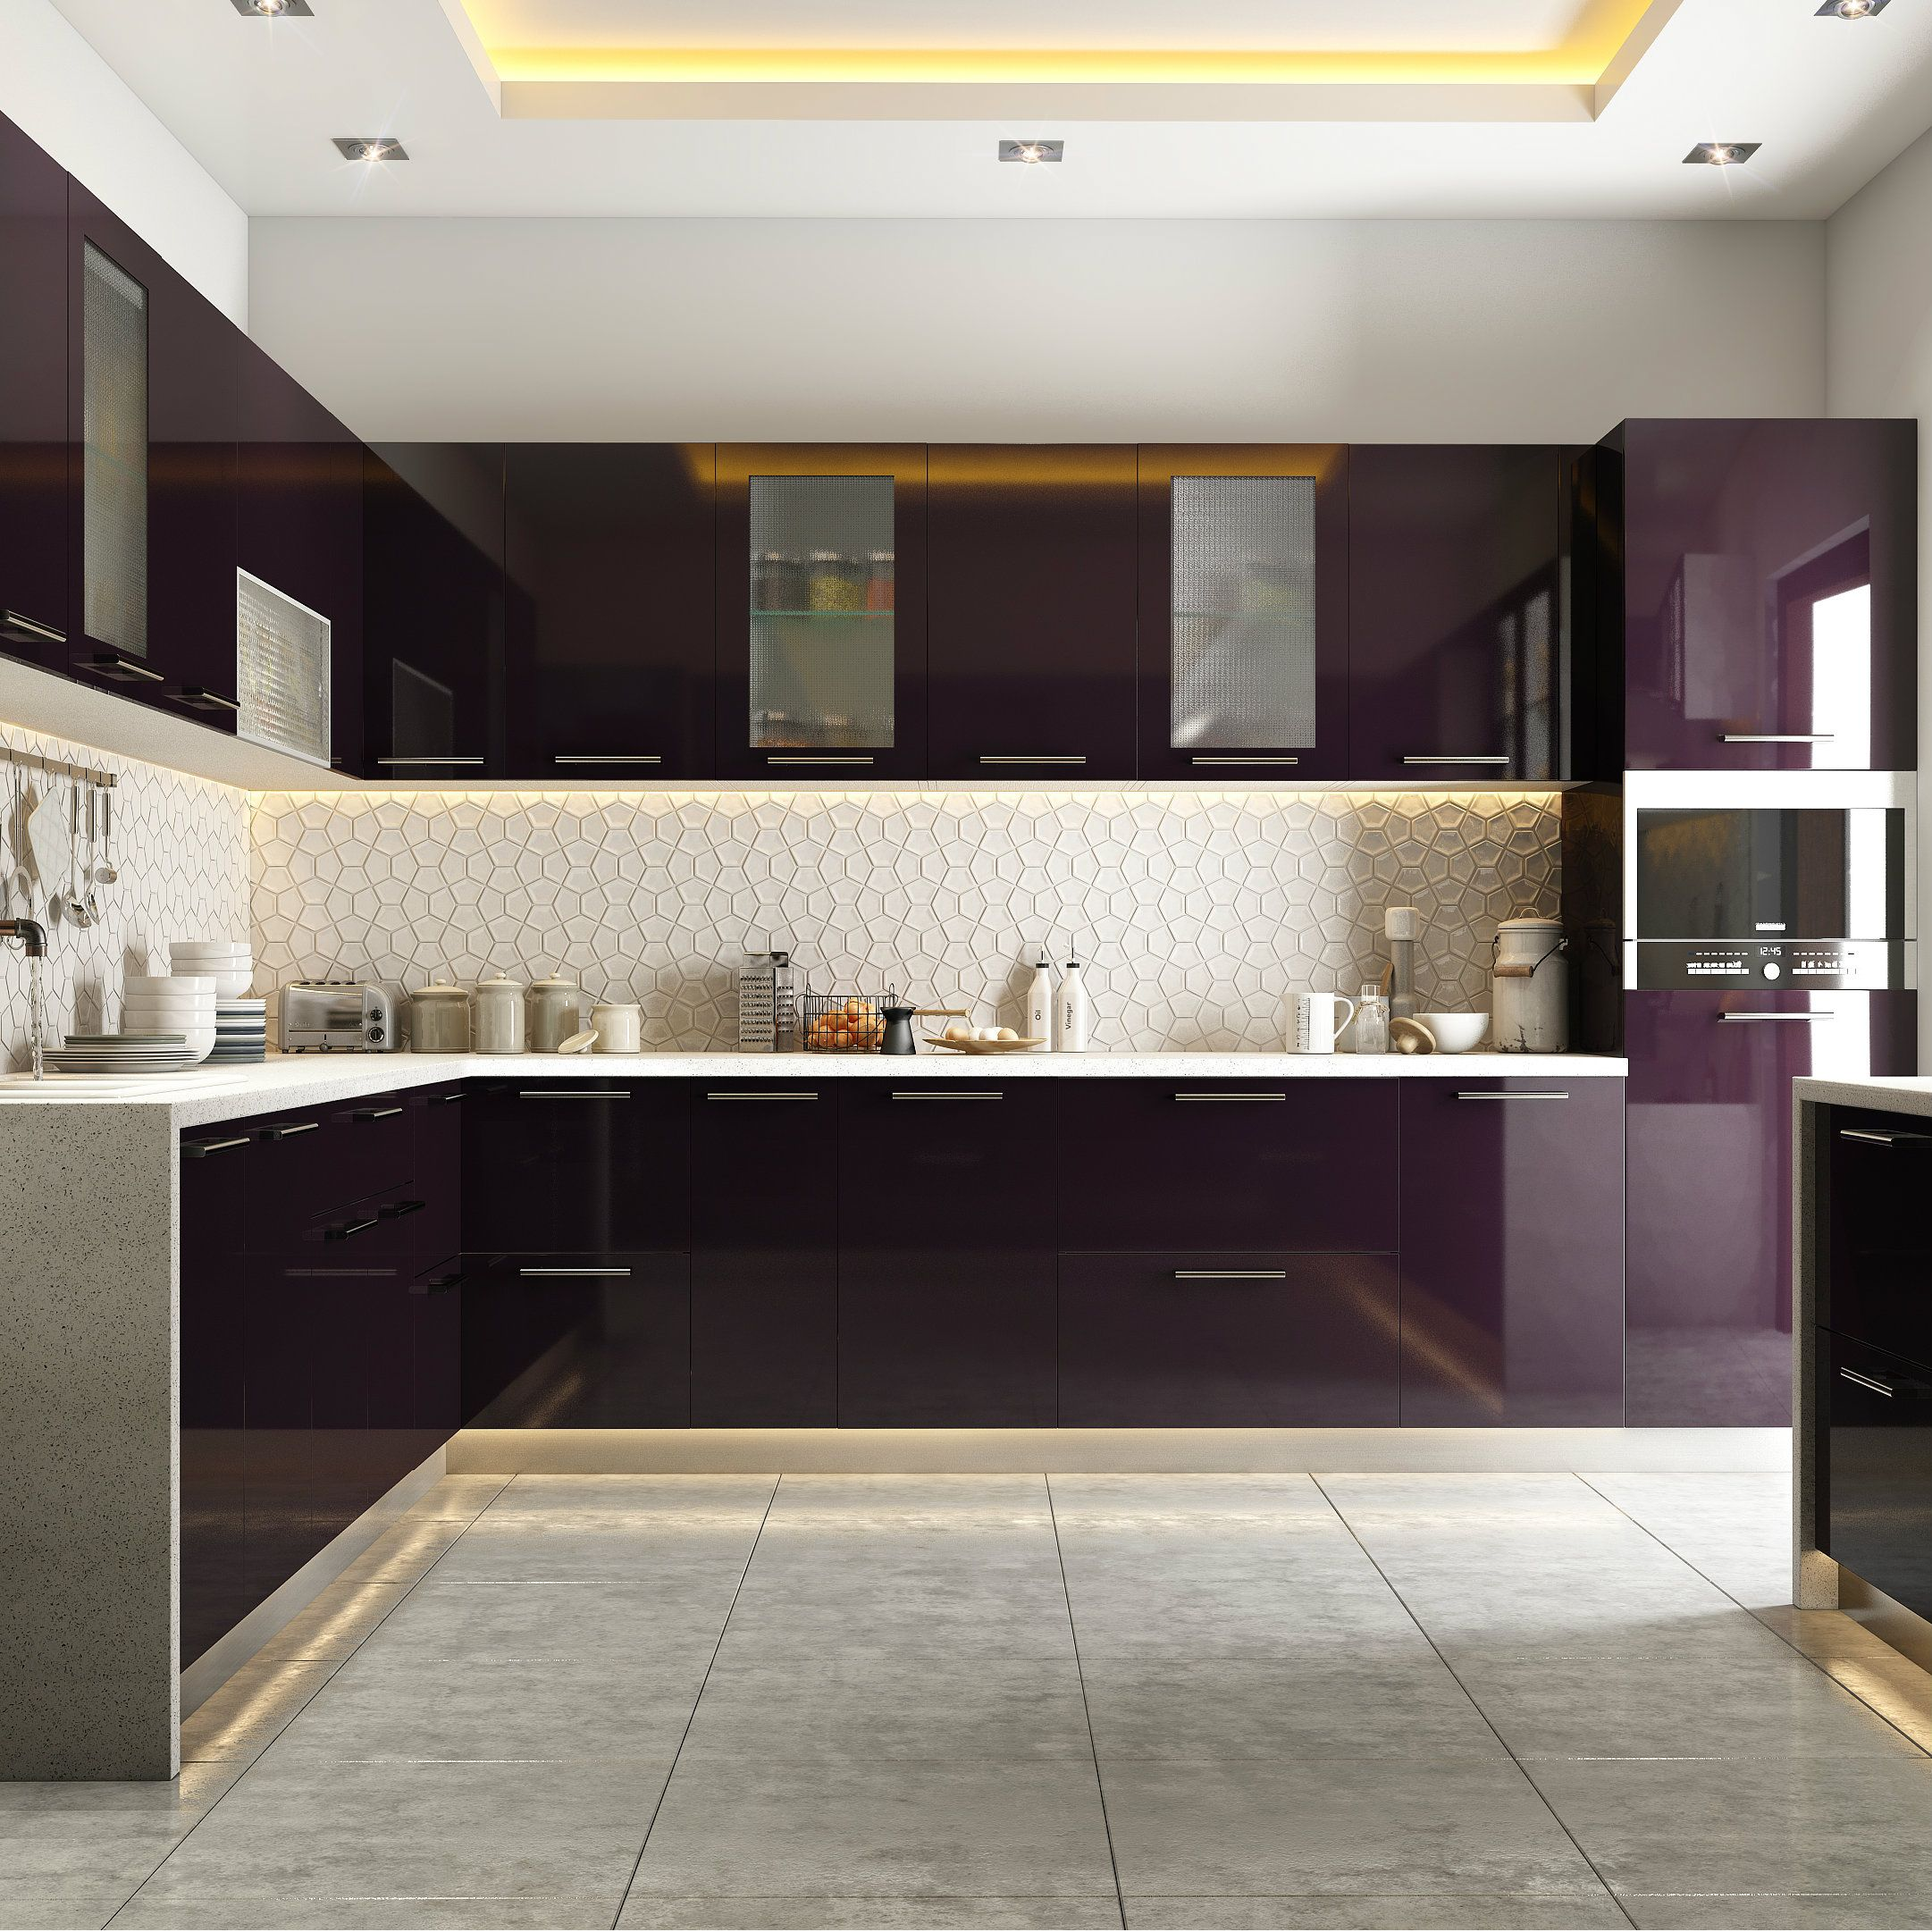 Modular Kitchen Styled In Burgundy Hues Kitchen Room Design Kitchen Modular Kitchen Furniture Design